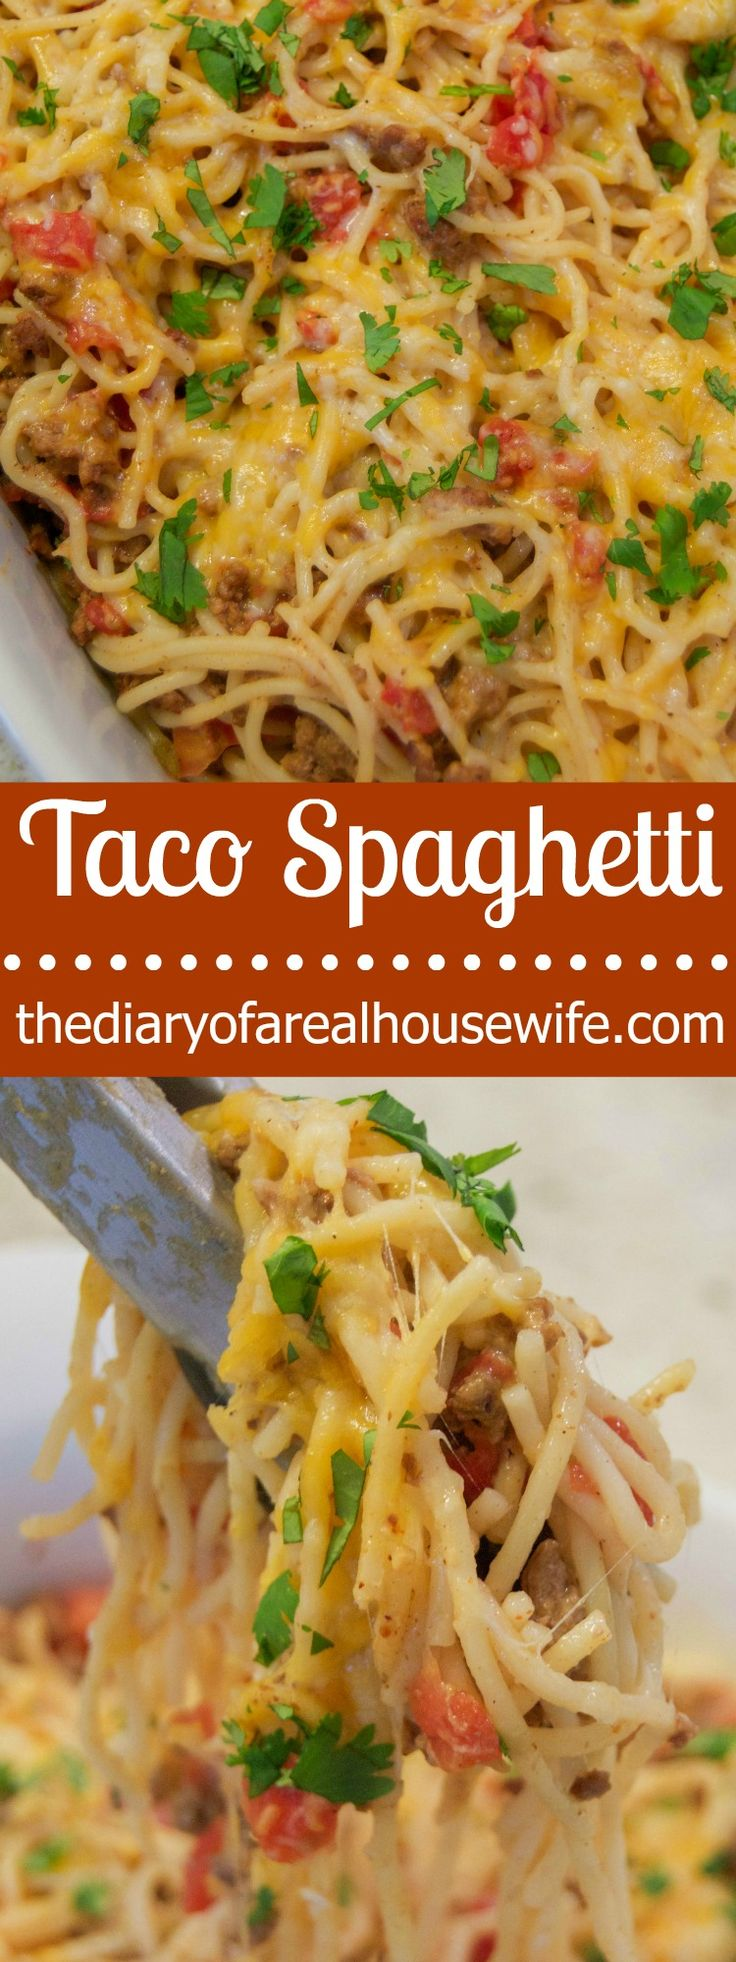 This easy dinner recipe is going to be something you want to your menu plan soon! My new favorite way to make spaghetti!